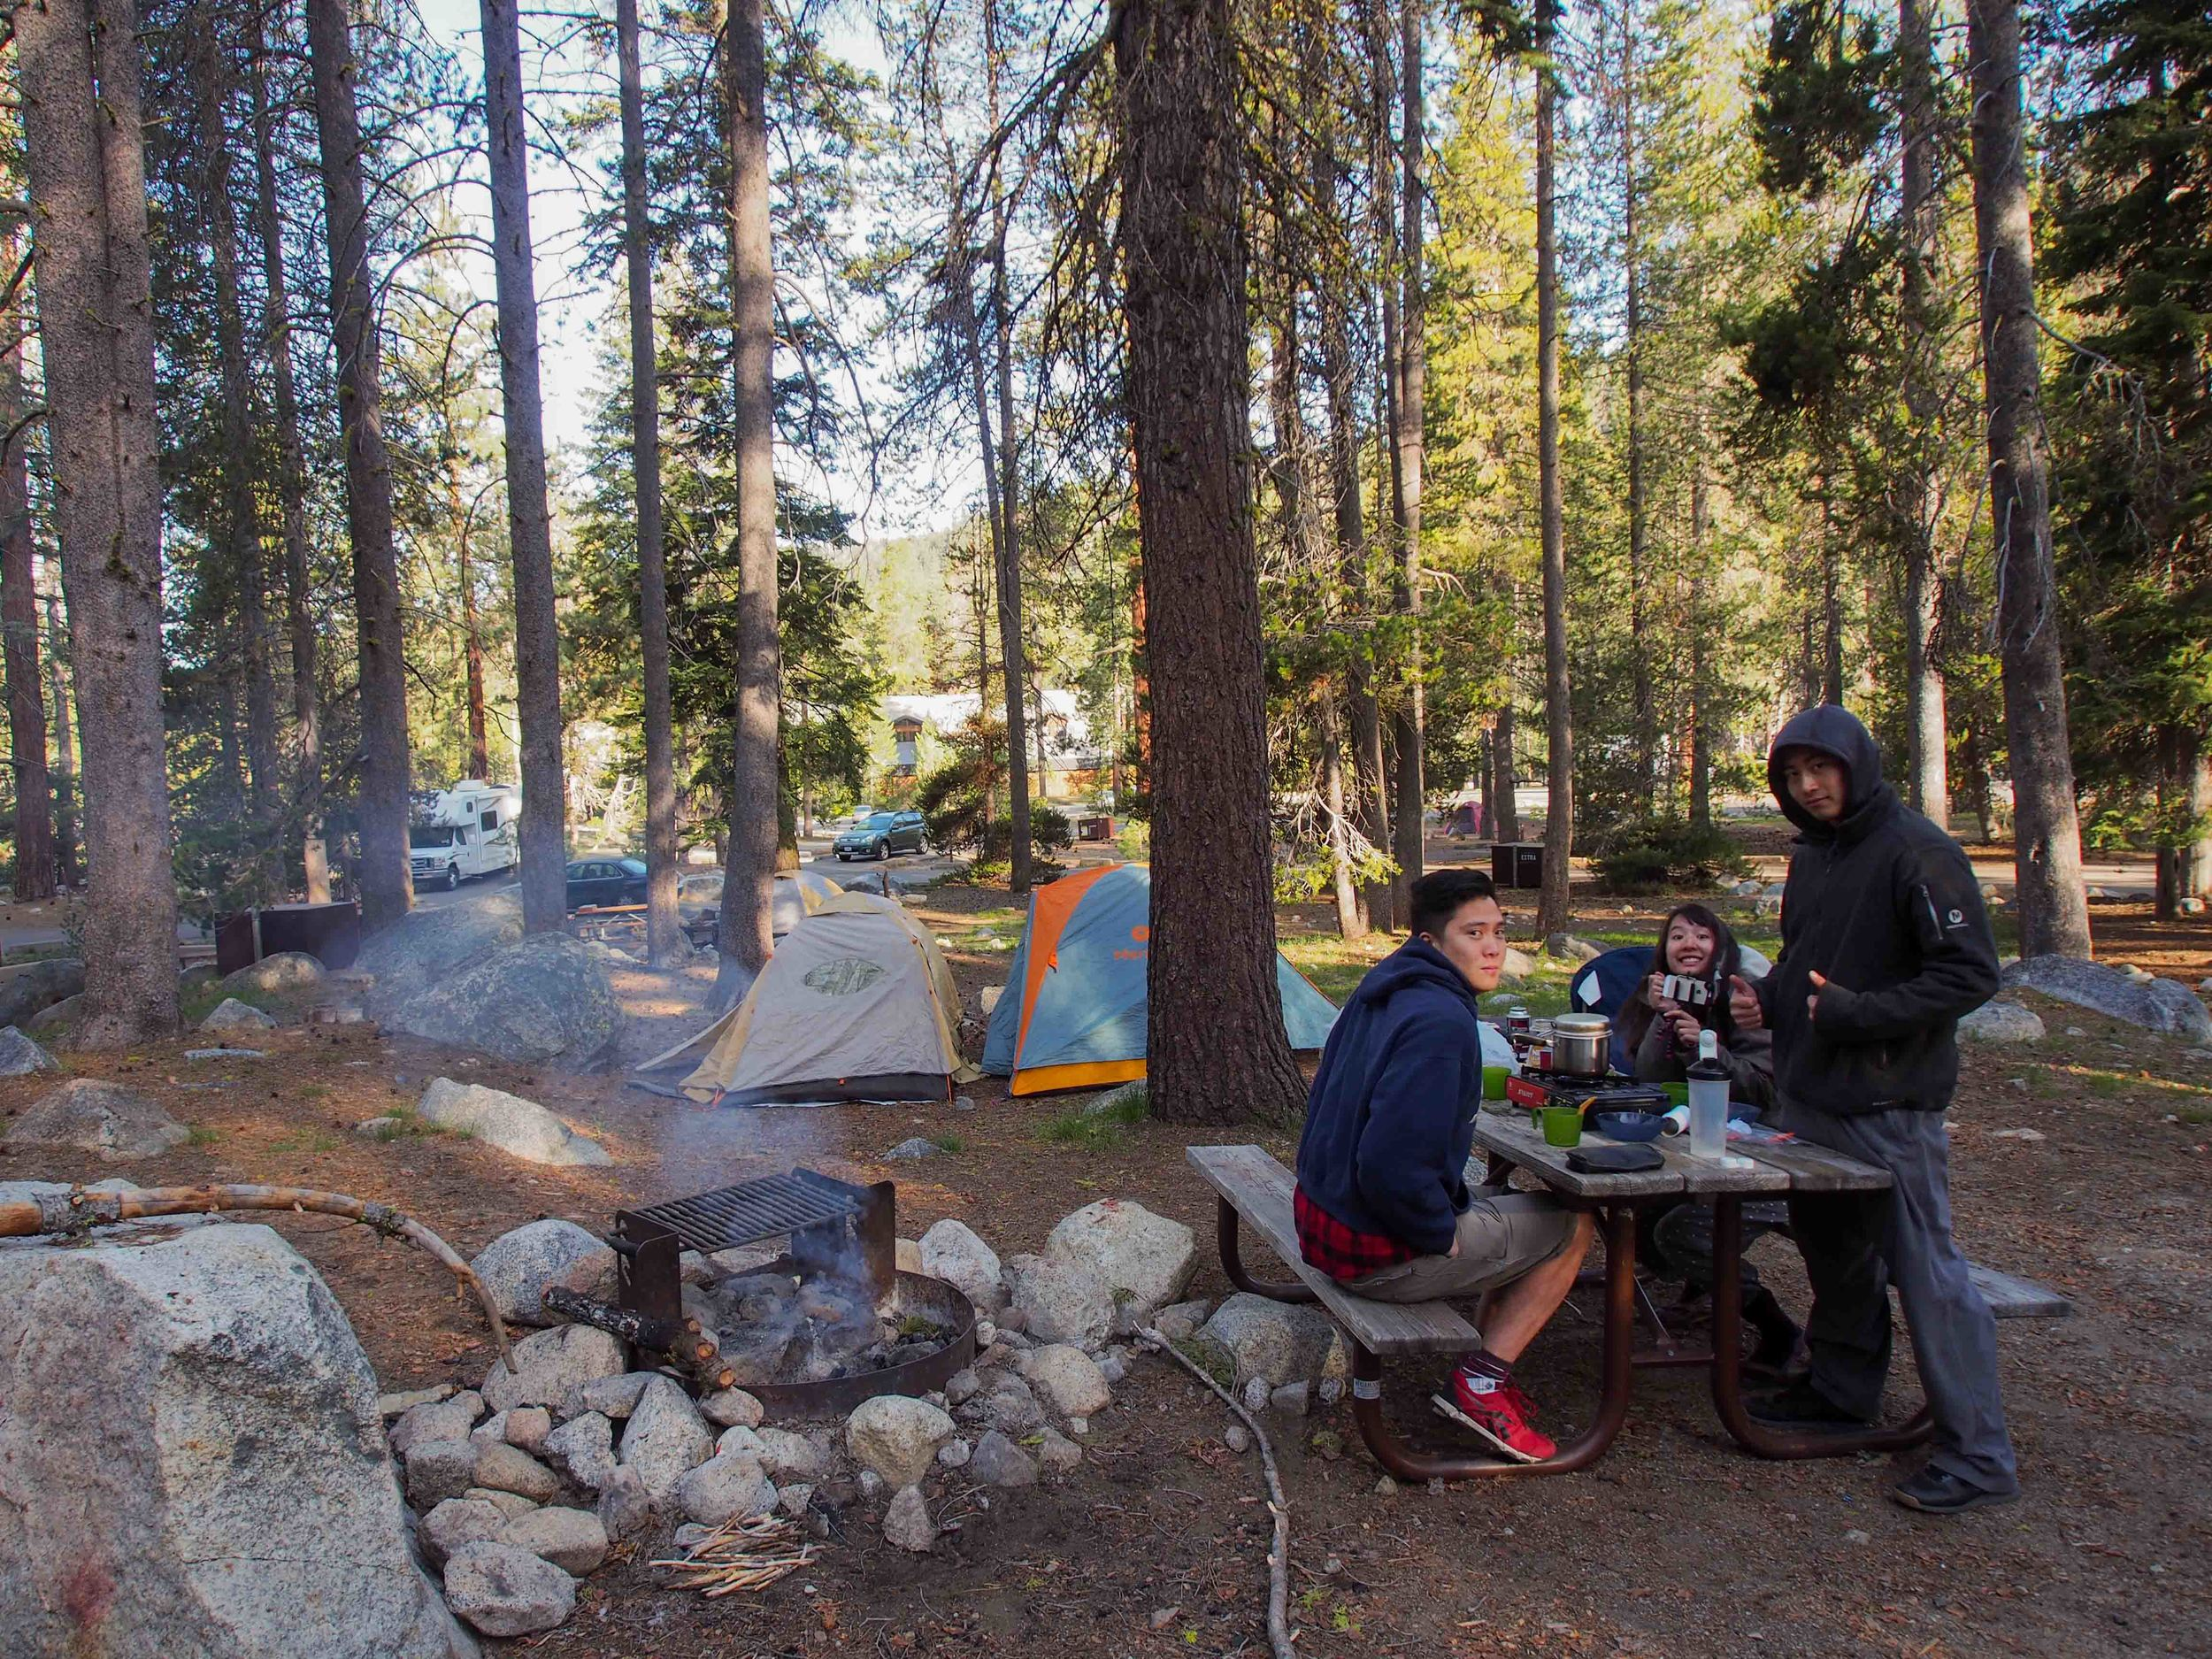 Our camp site on the first loop of the campground